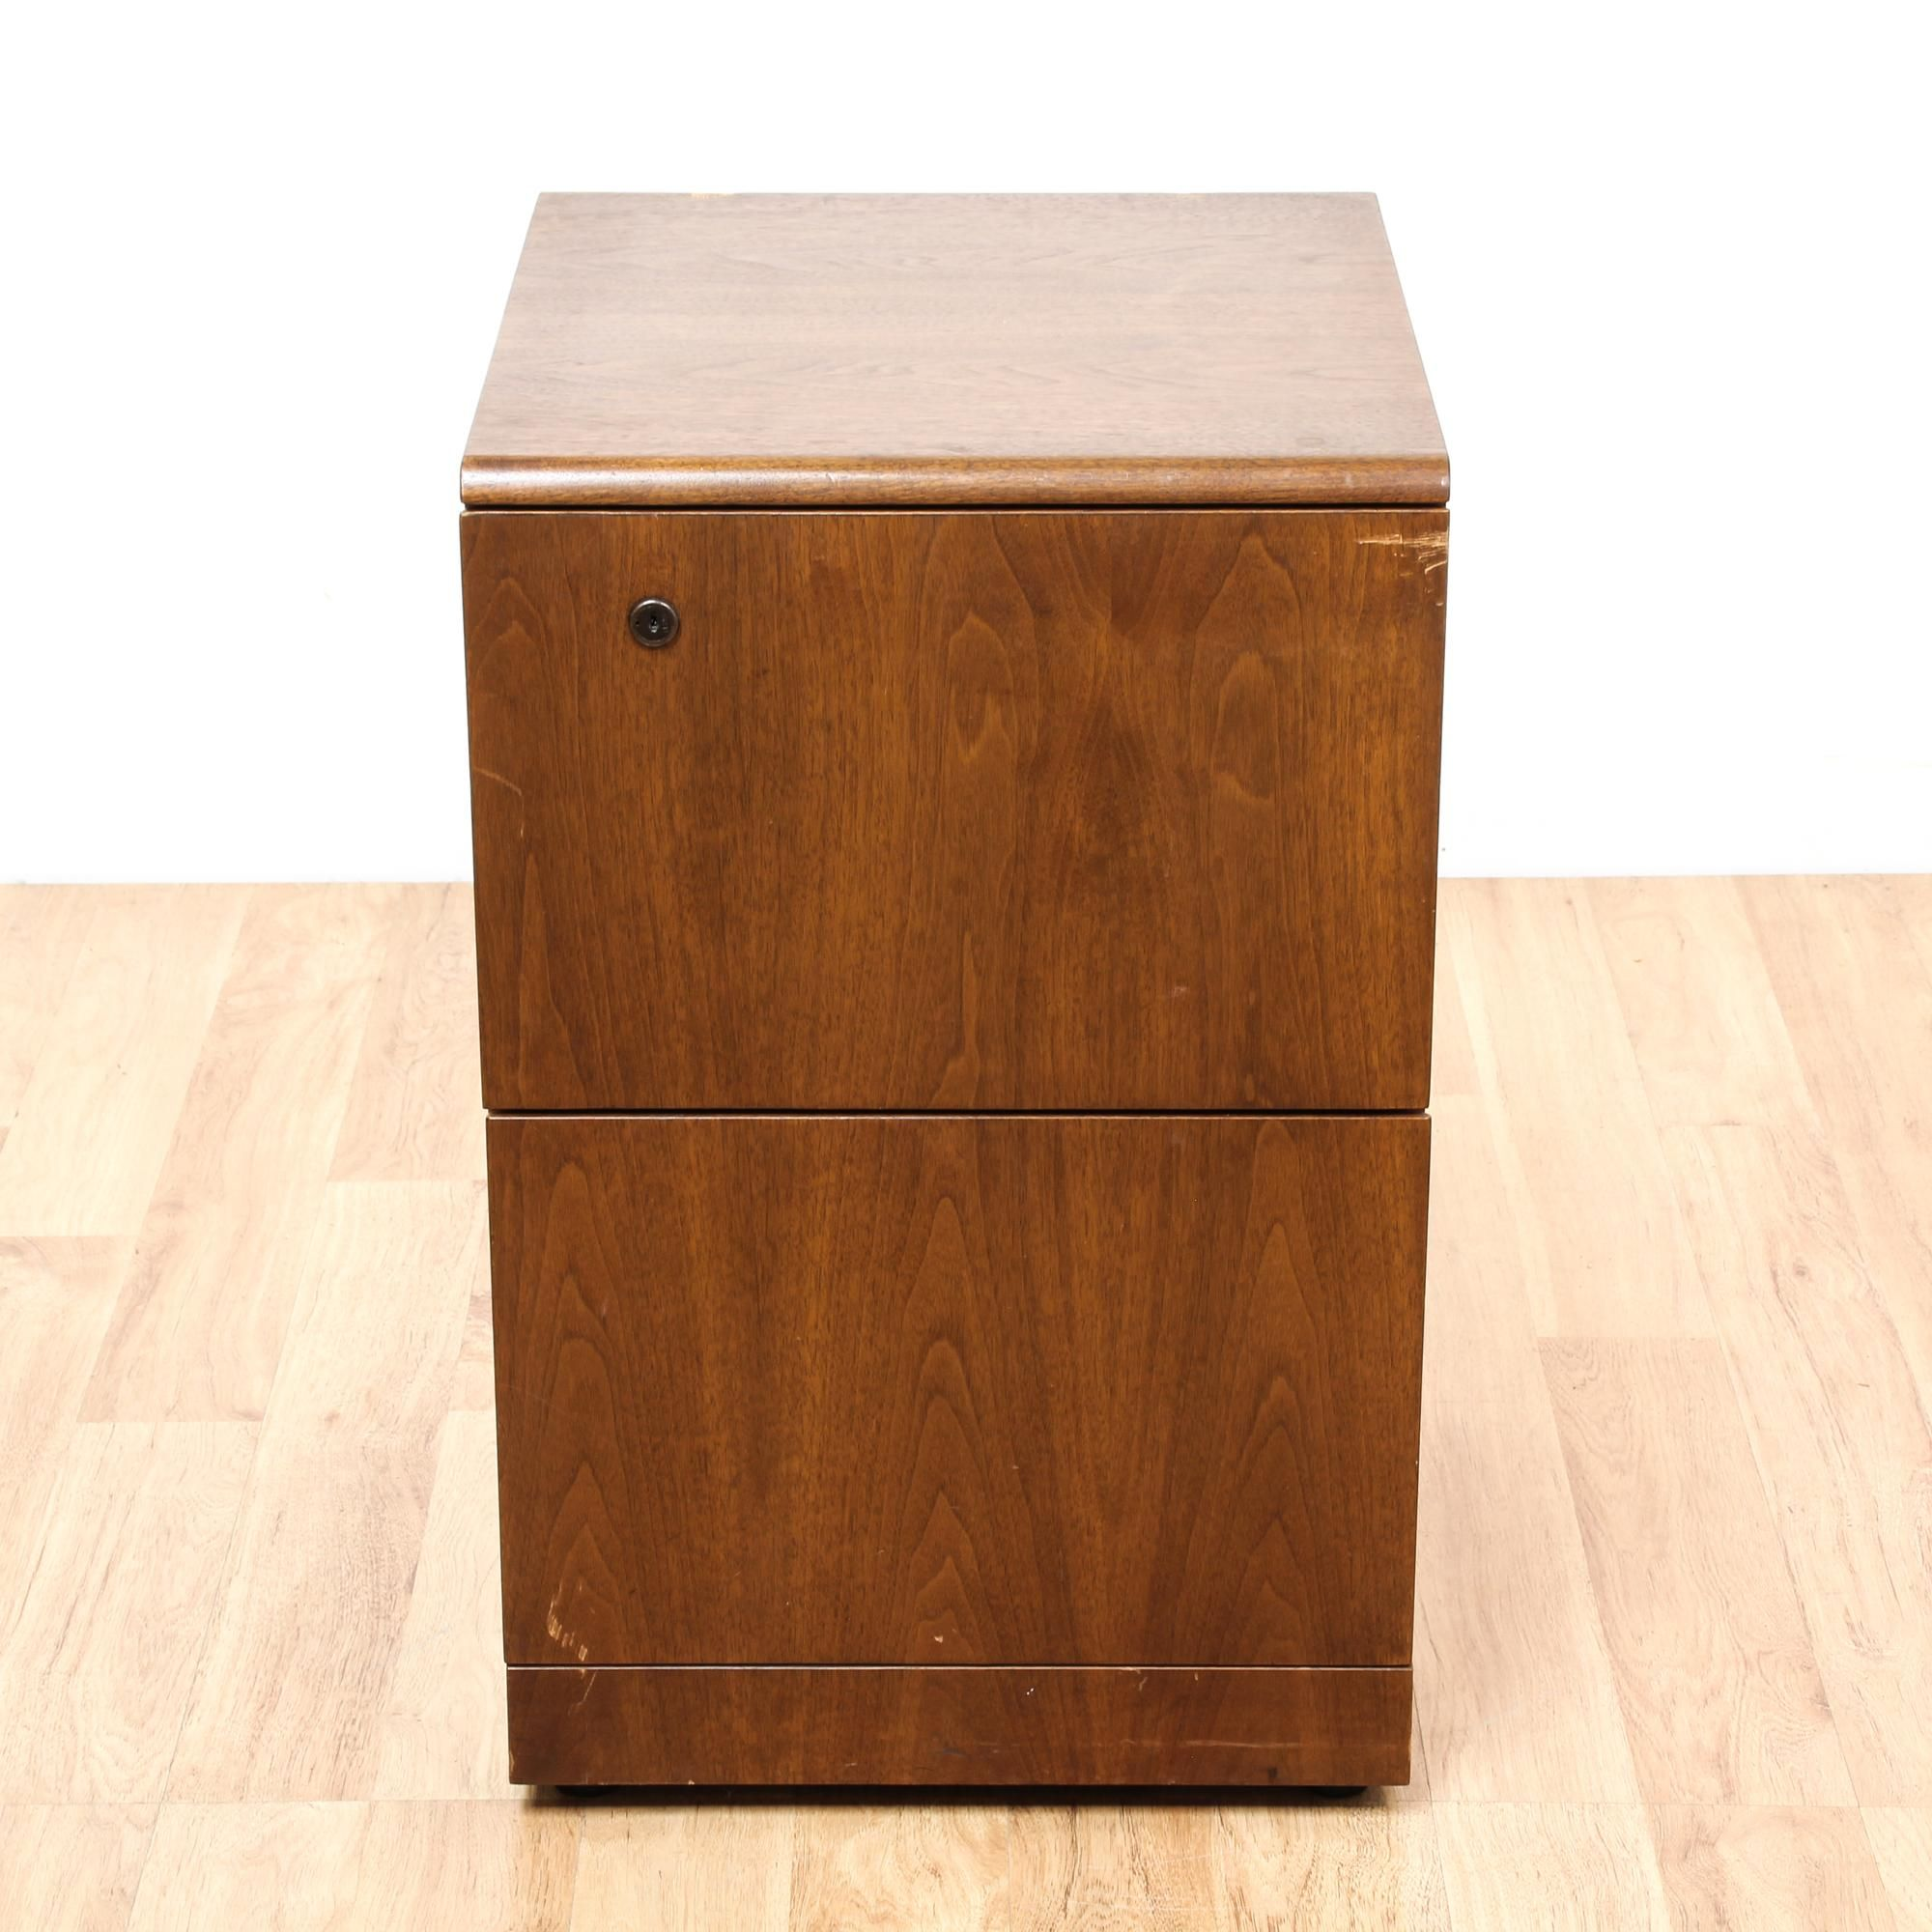 This File Cabinet Is Featured In A Solid Wood With A Glossy Walnut Finish.  This Mid Century Modern Style Chest Of Drawers Has 2 Spacious Drawers And  ...